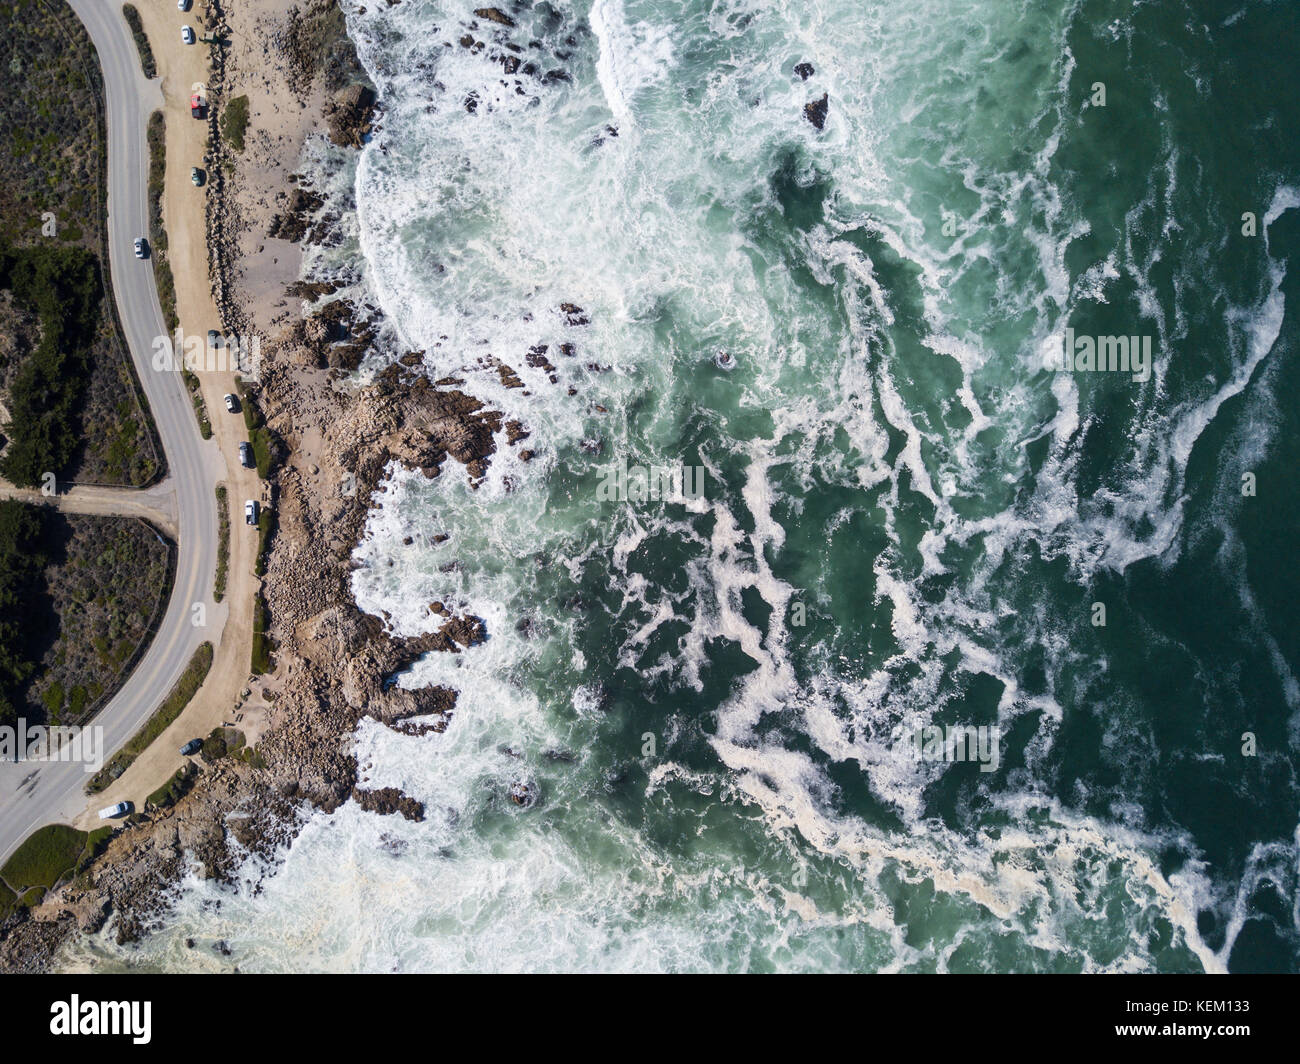 The Pacific Ocean washes against the rocky and scenic coastline of the Monterey peninsula in California. - Stock Image